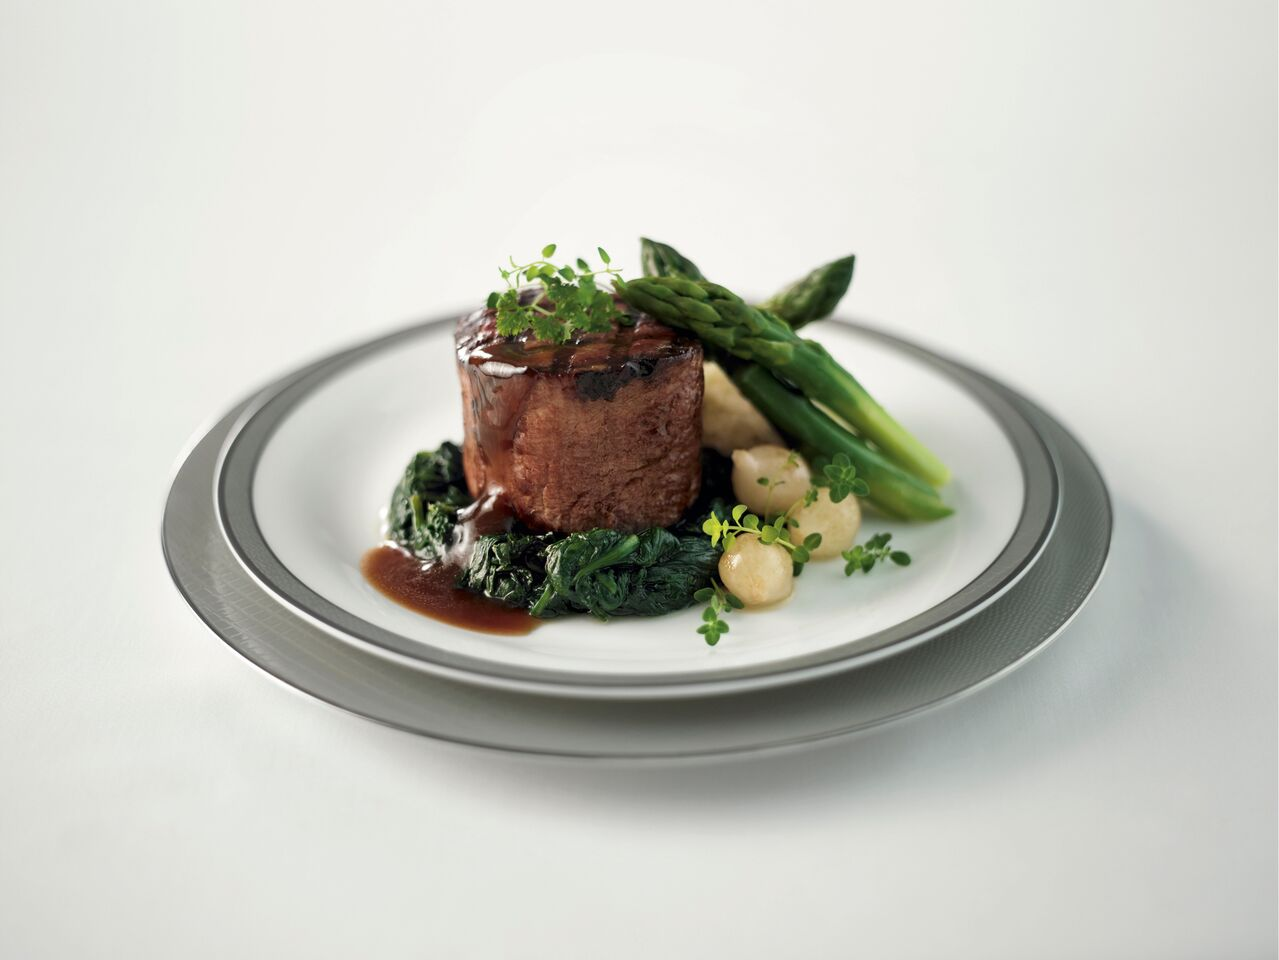 Beef Fillet, a dish available for pre-order through SIA's new meal pre-ordering service. Photo courtesy: SIA